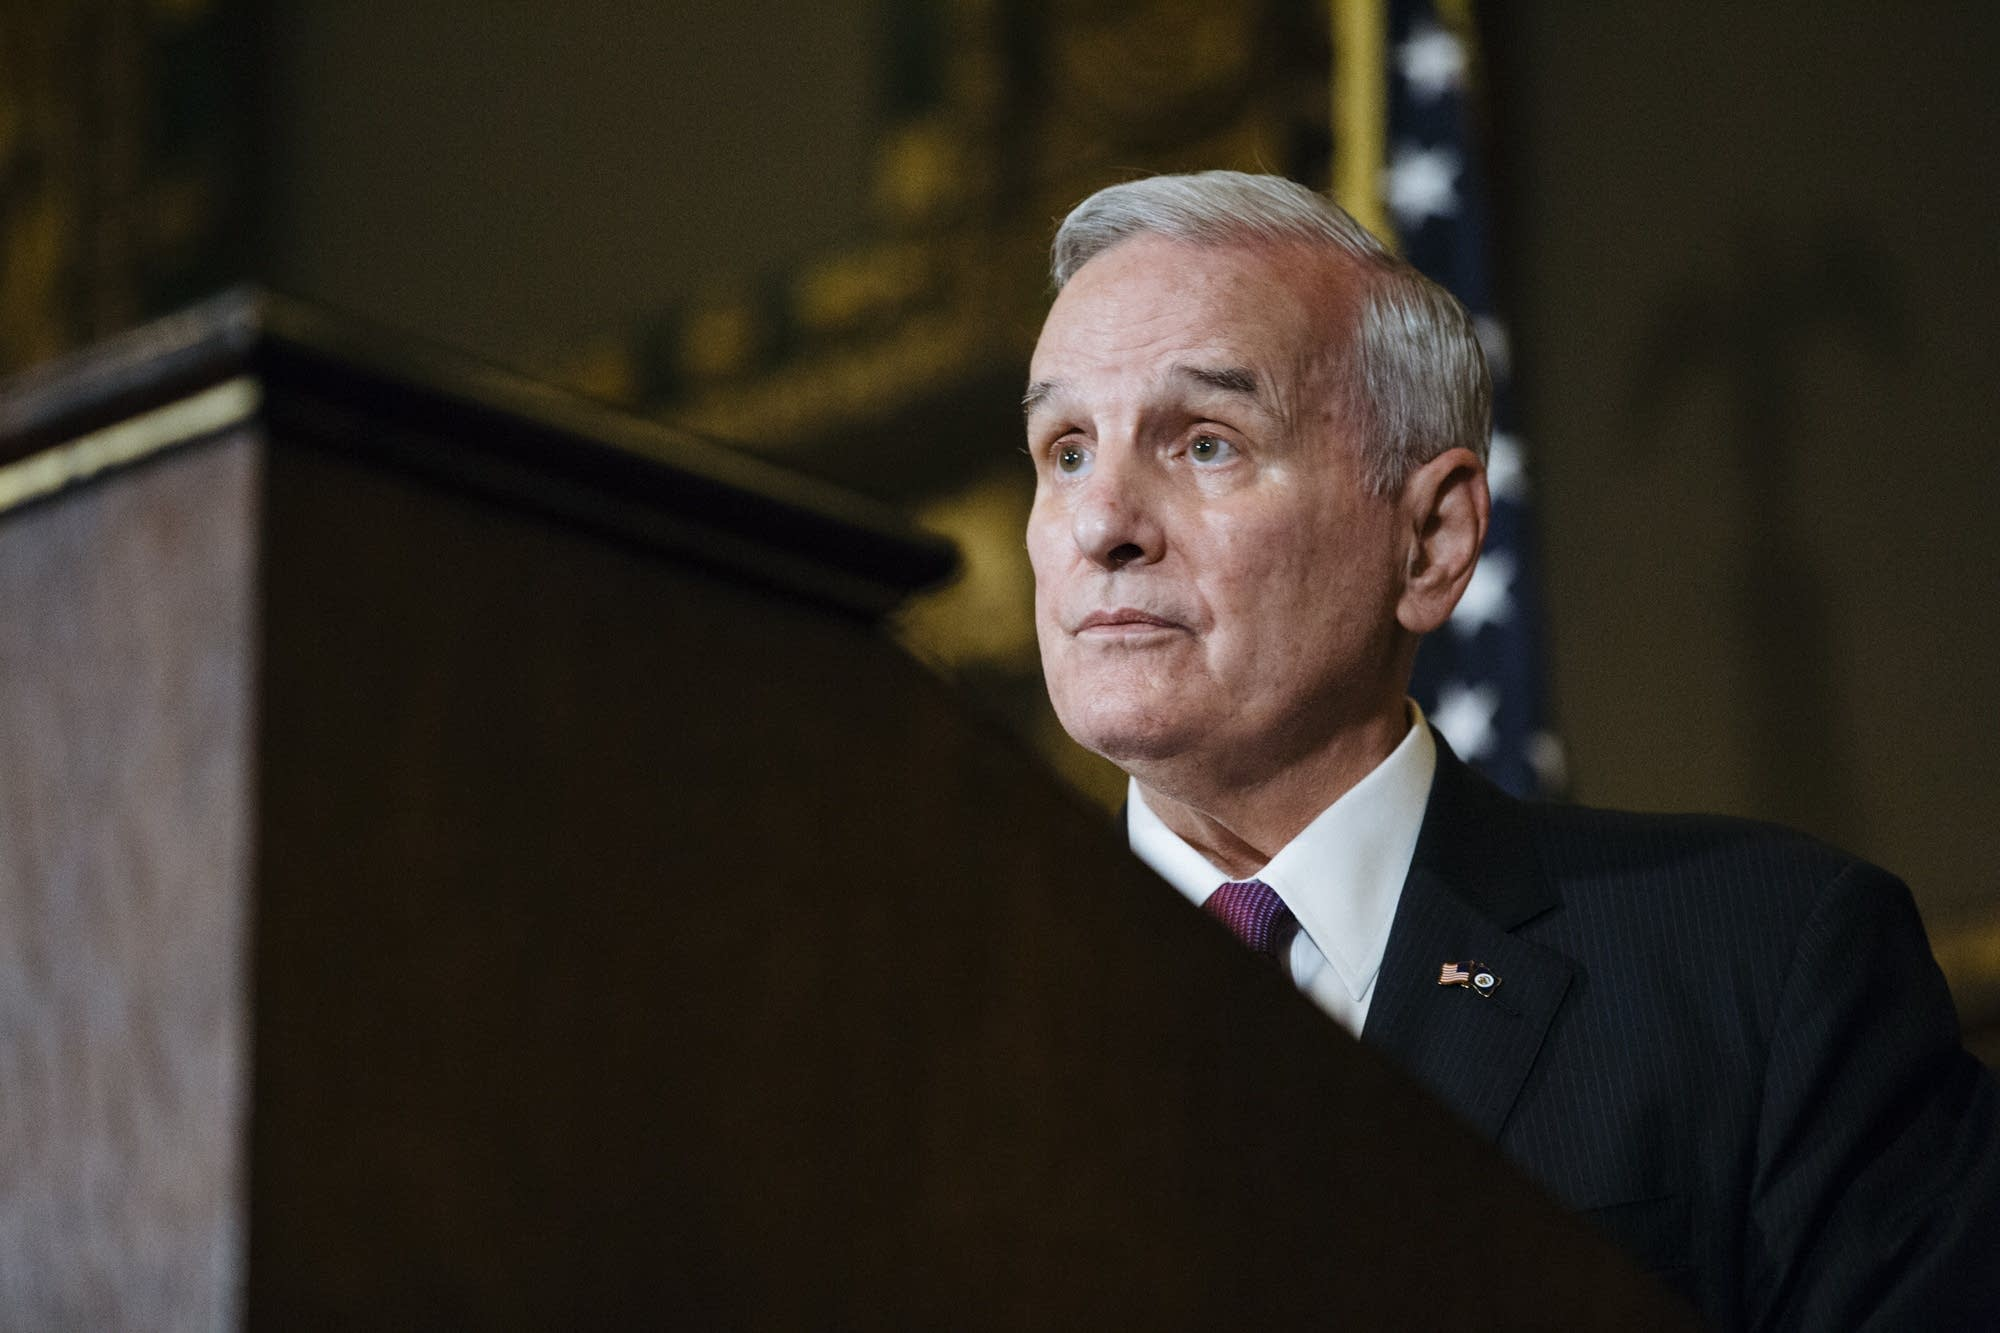 DFL Gov. Mark Dayton listens to reporter's questions